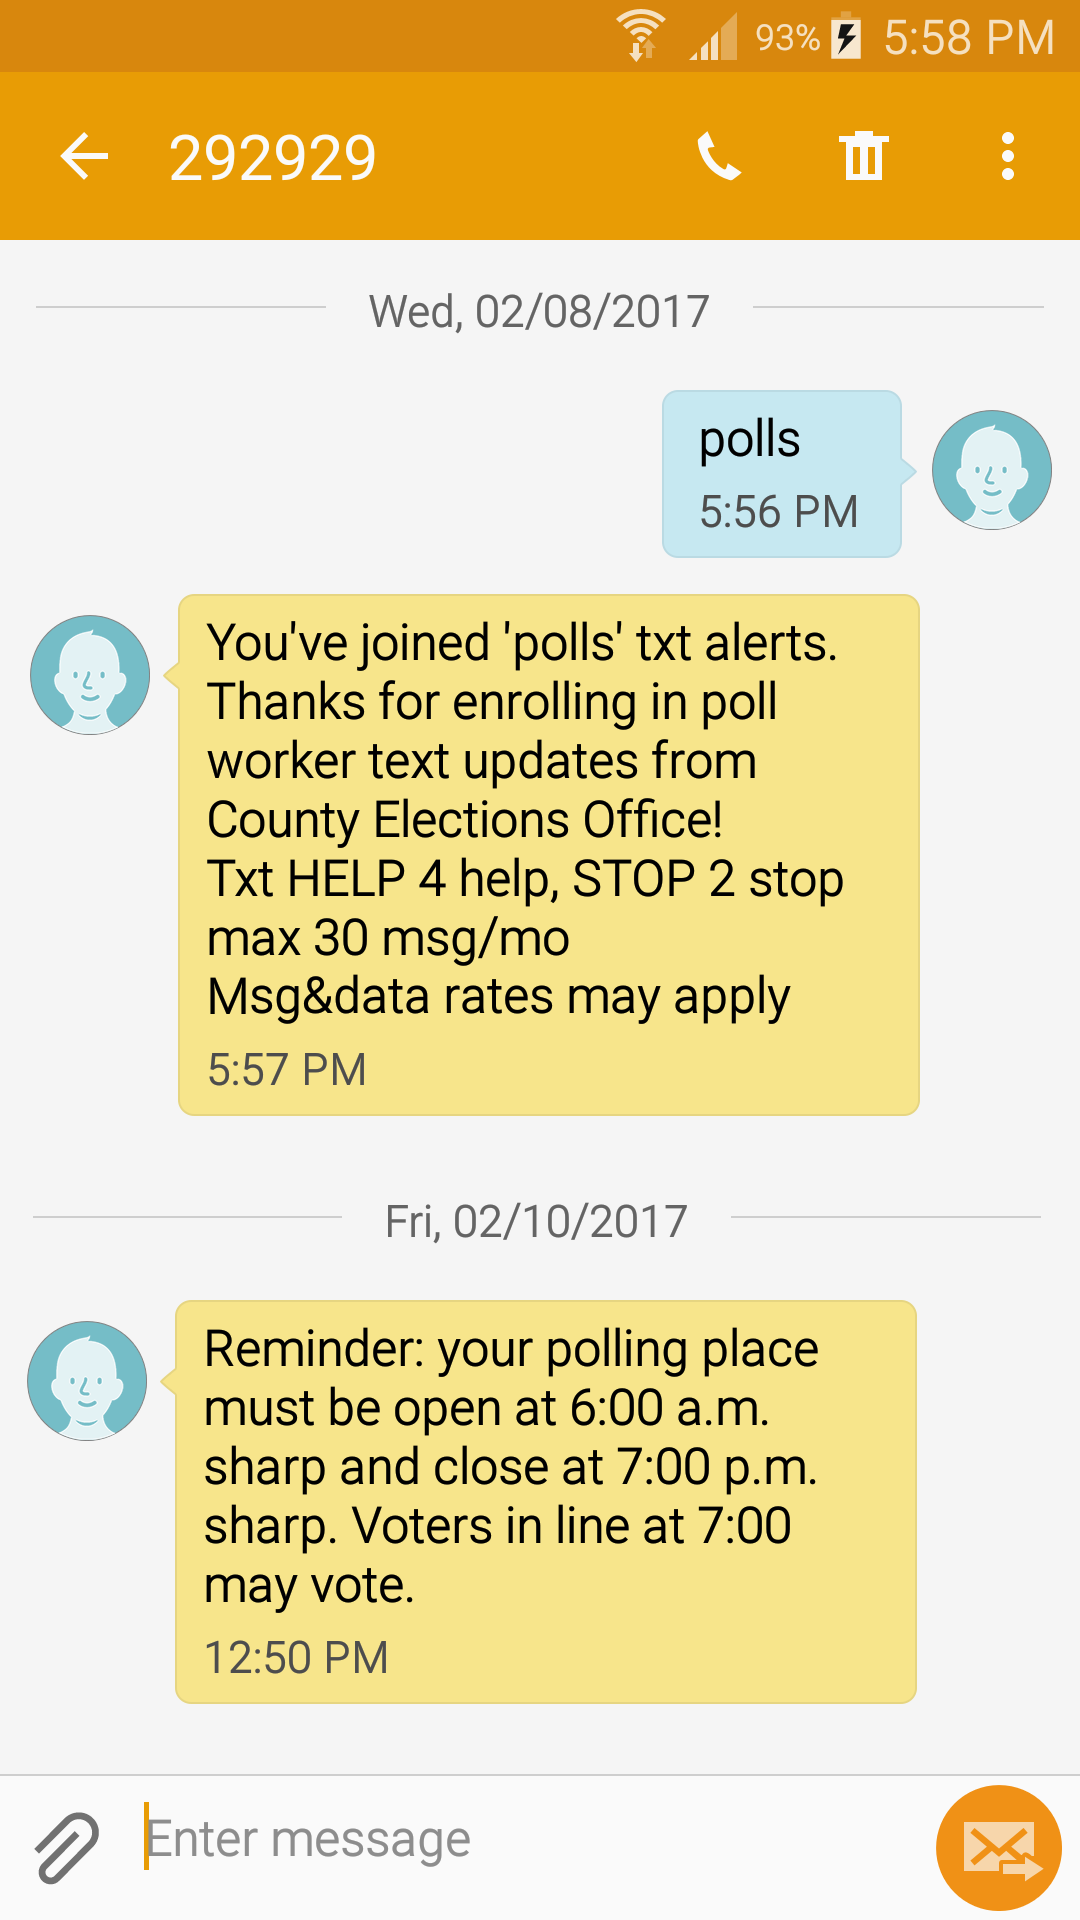 Phone screenshot shows a user has subscribed to text messages and has gotten a text reminder about when to open and close the polls